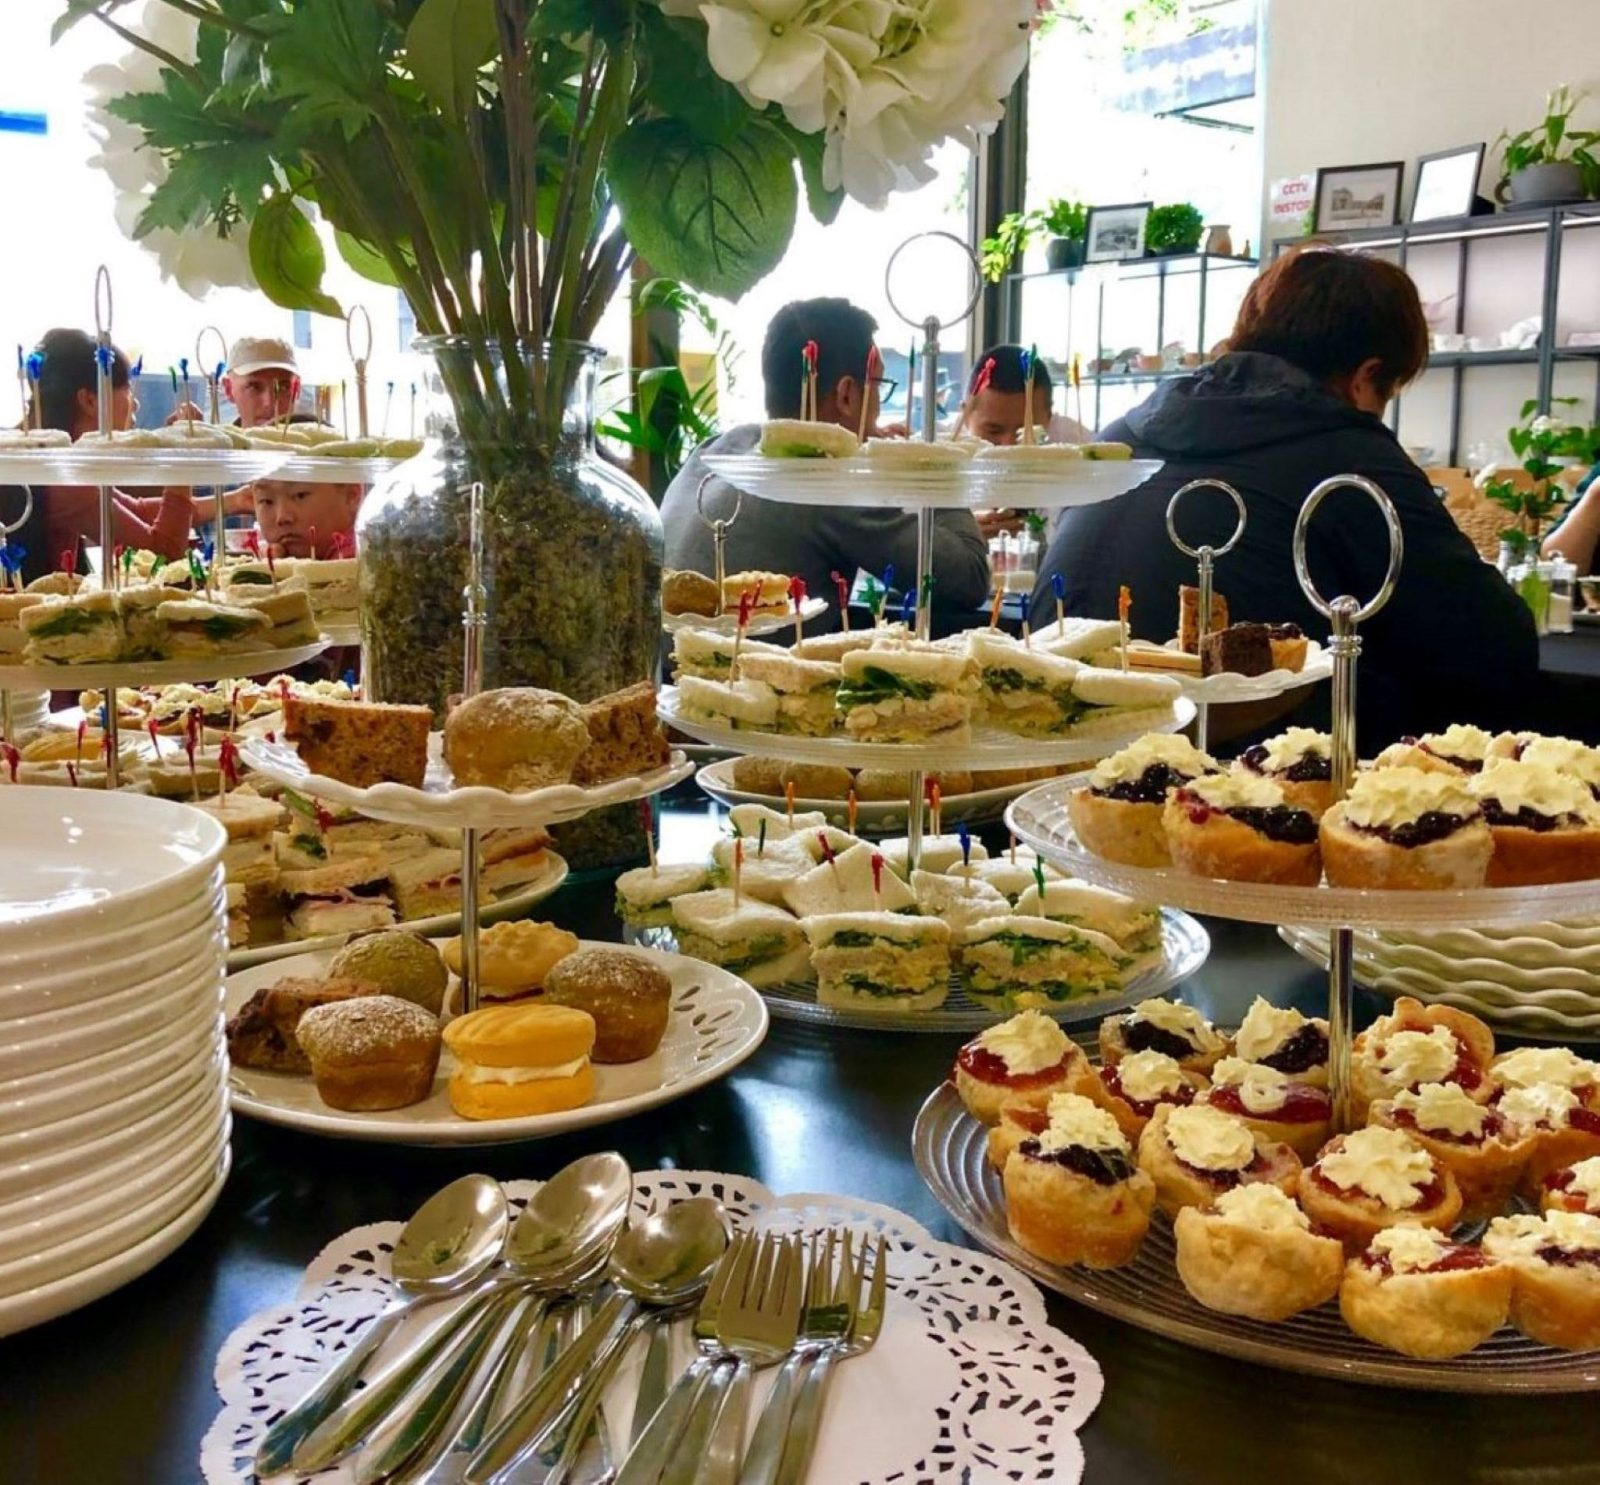 Hobart Town Tearooms is very popular for its Mini Me High Teas. Excellent value-traditional quality